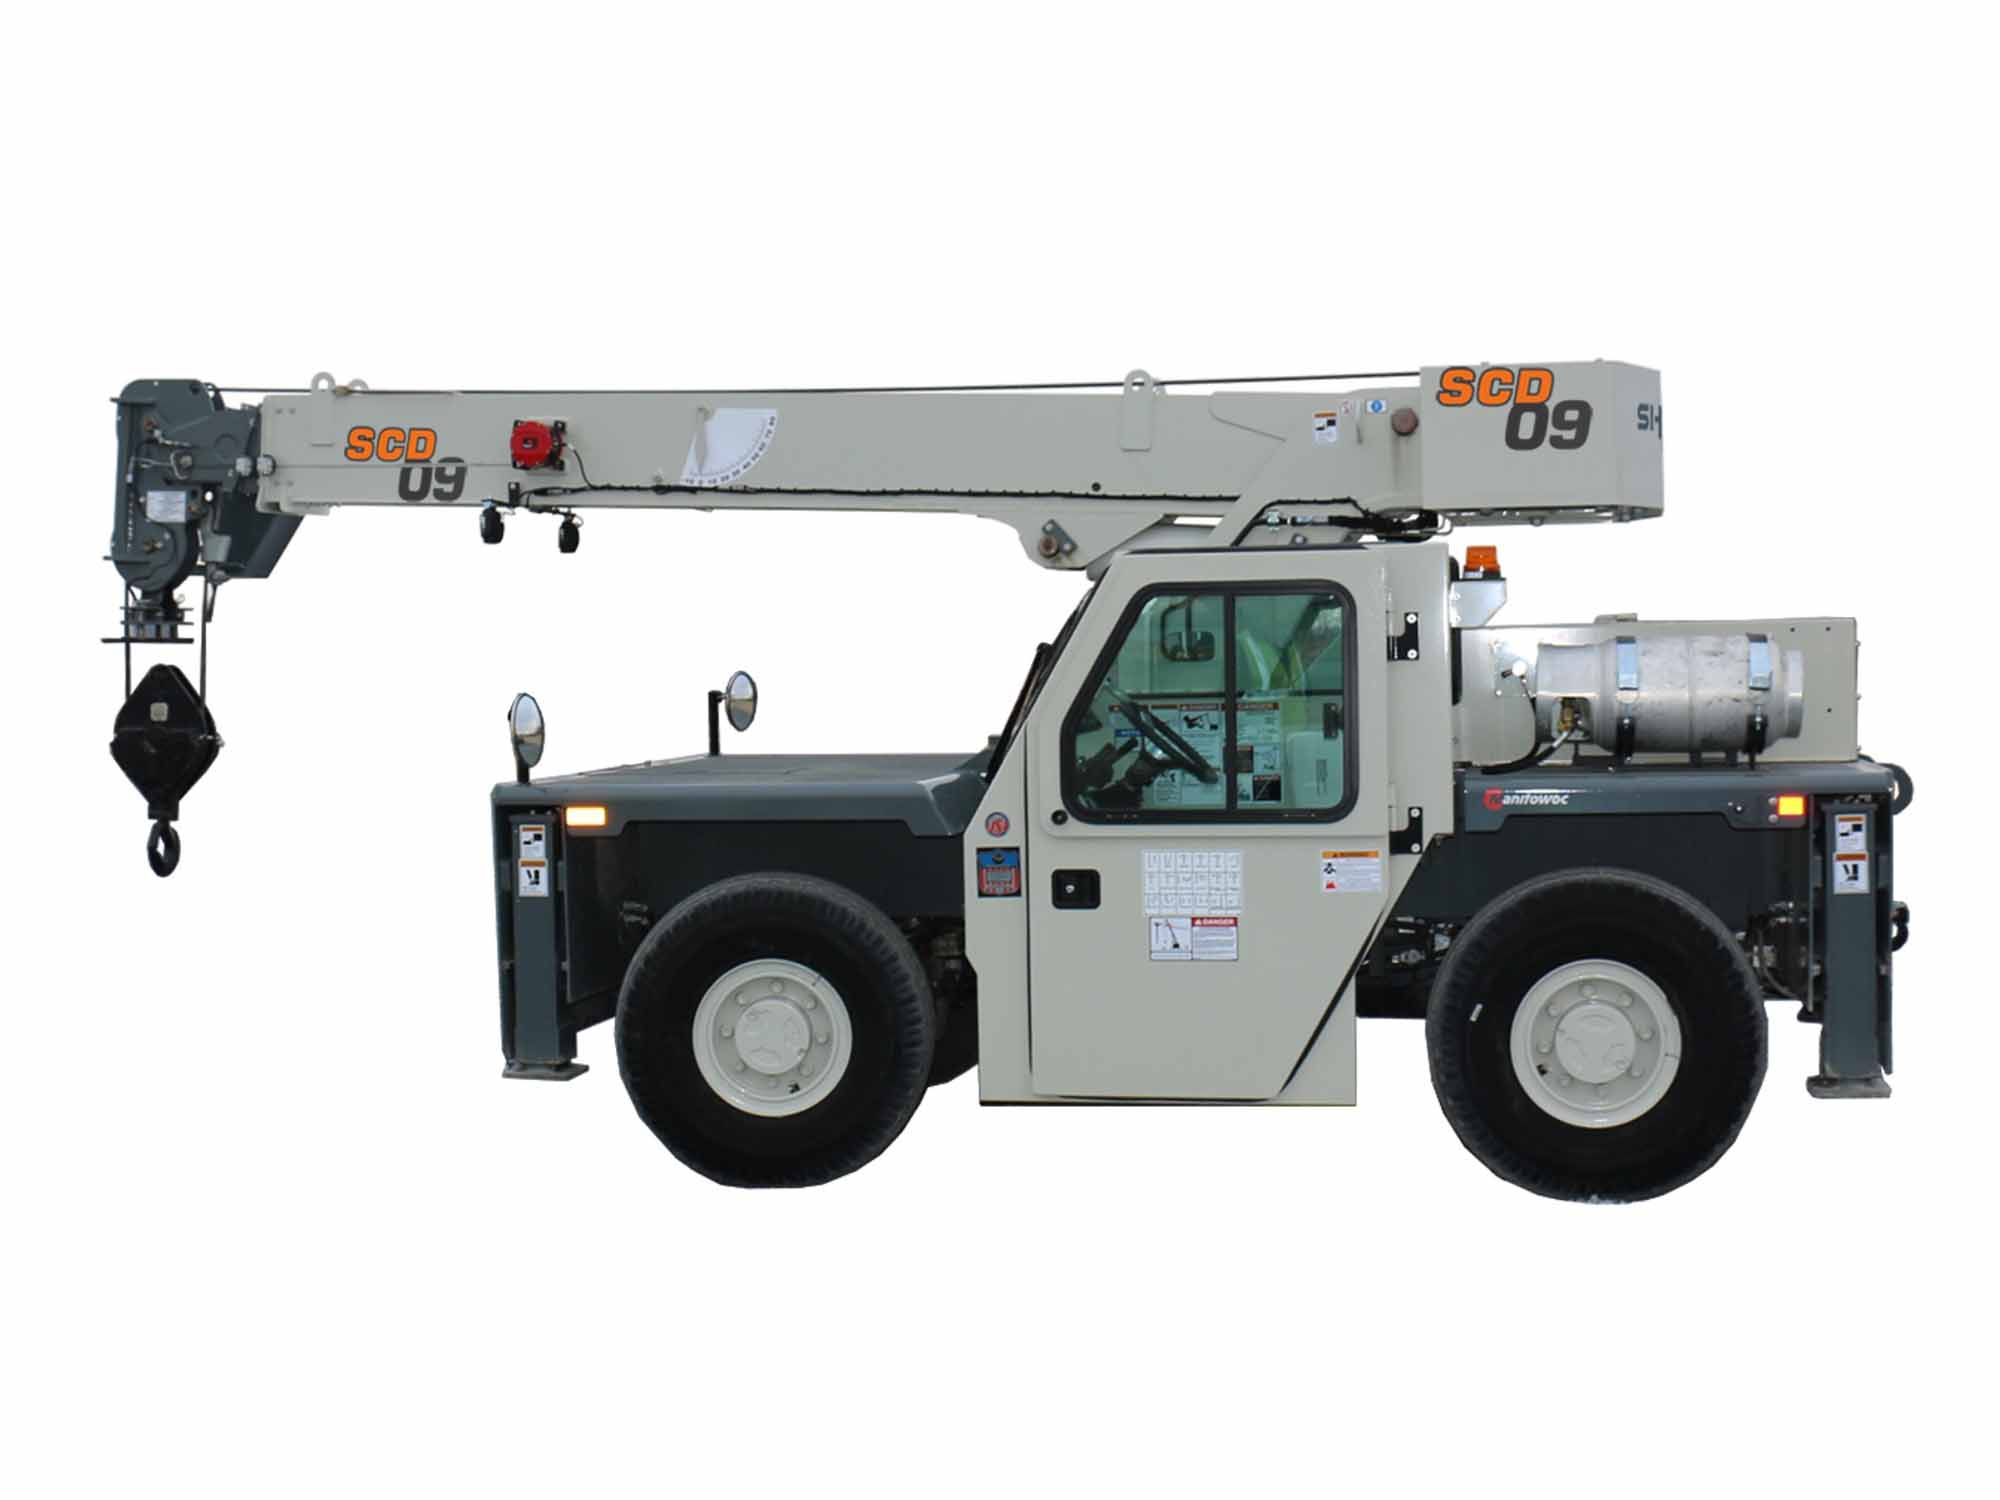 NEW 2020 SHUTTLELIFT SCD-09 #SCD09 Image